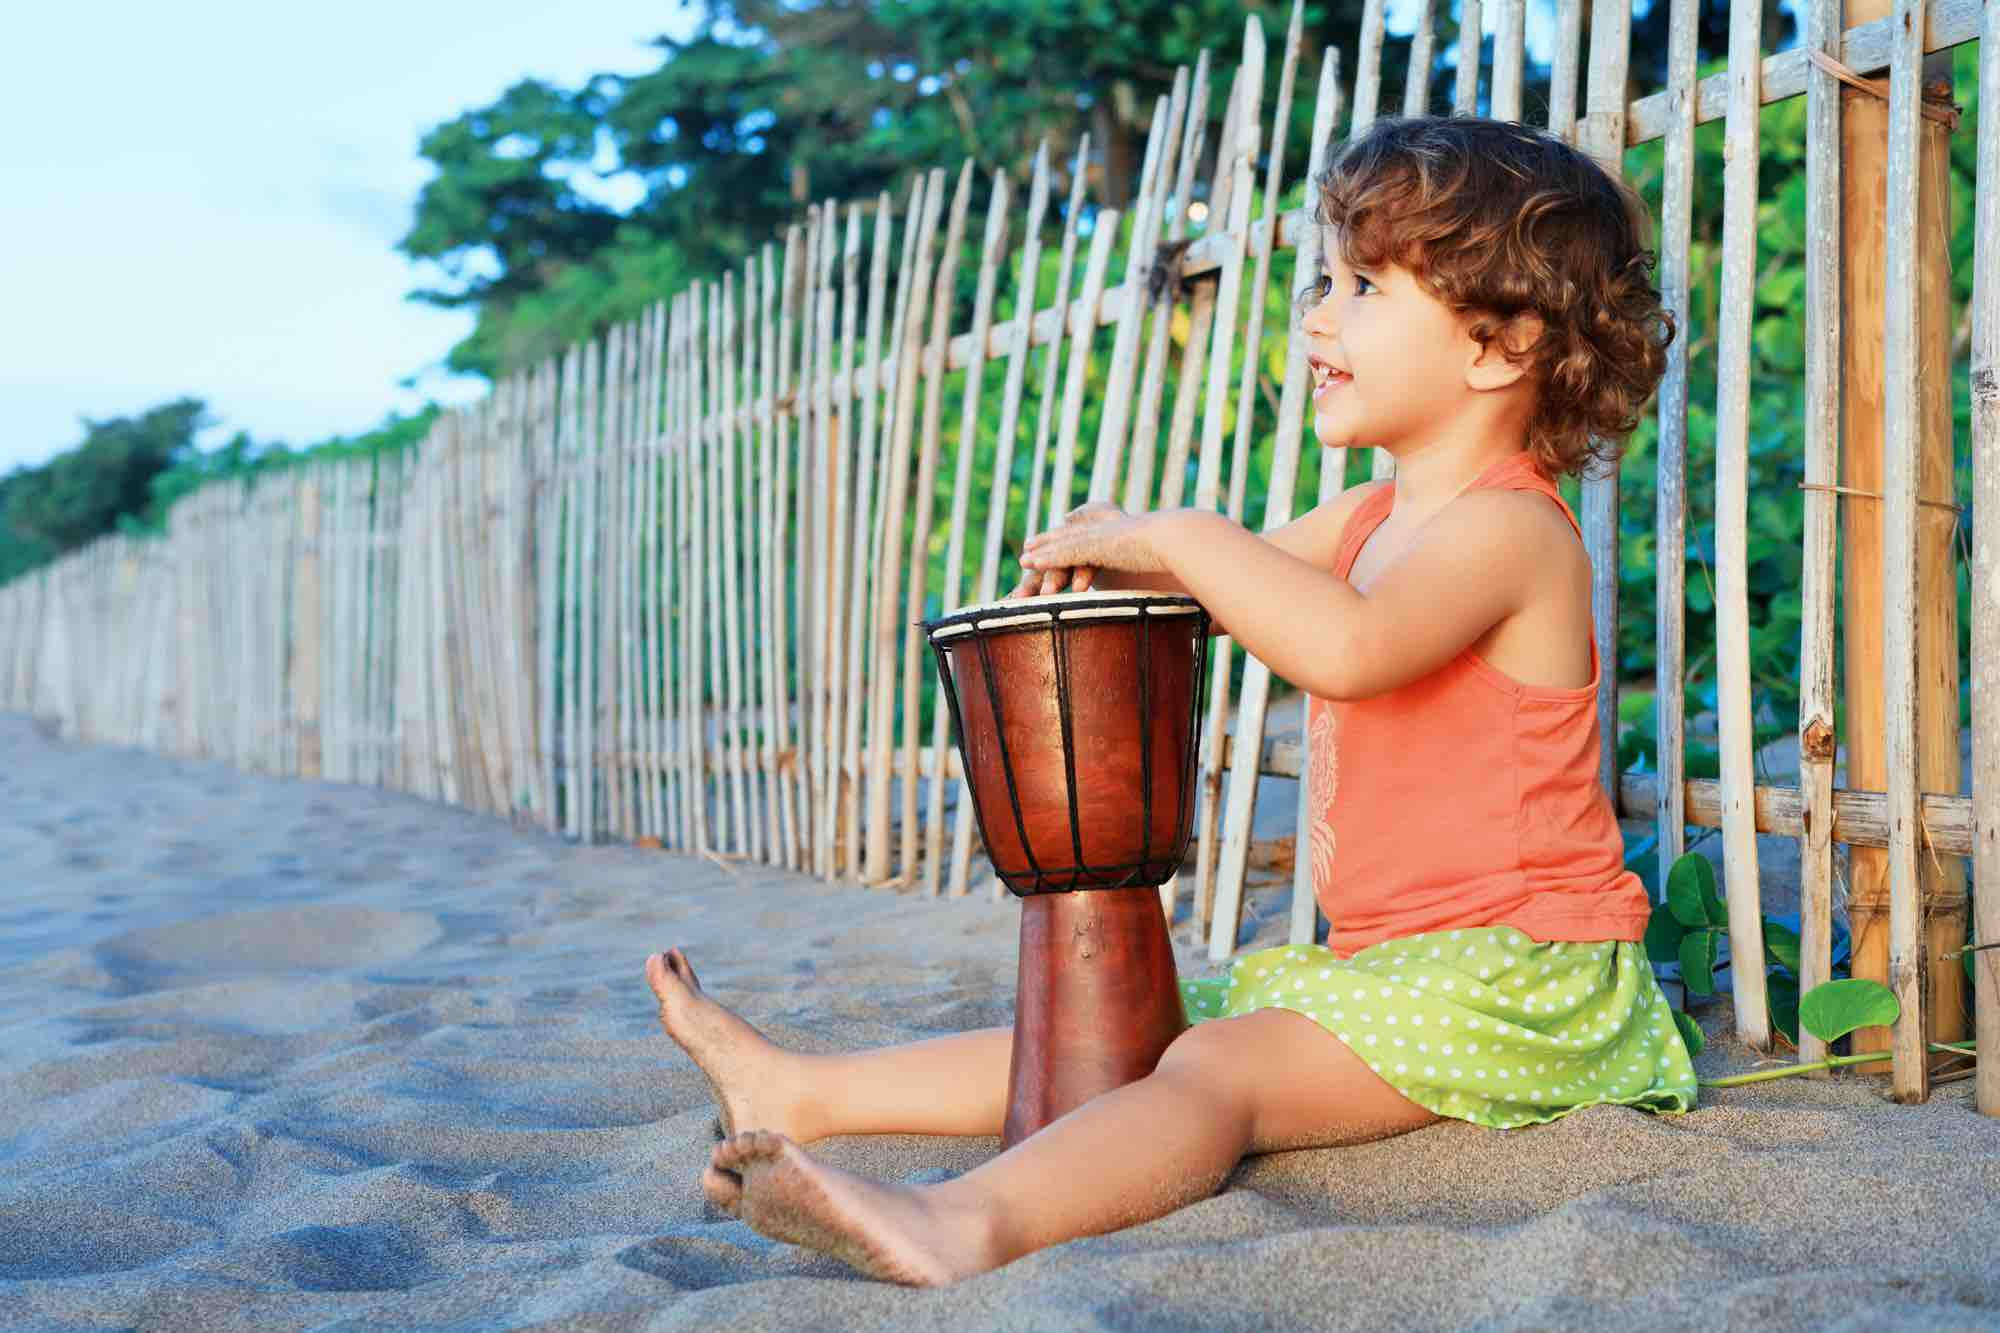 Find out the best Things to do with Toddlers in Maui recommended by top Hawaii blog Hawaii Travel with Kids. Image of a little girl playing a drum on a beach.